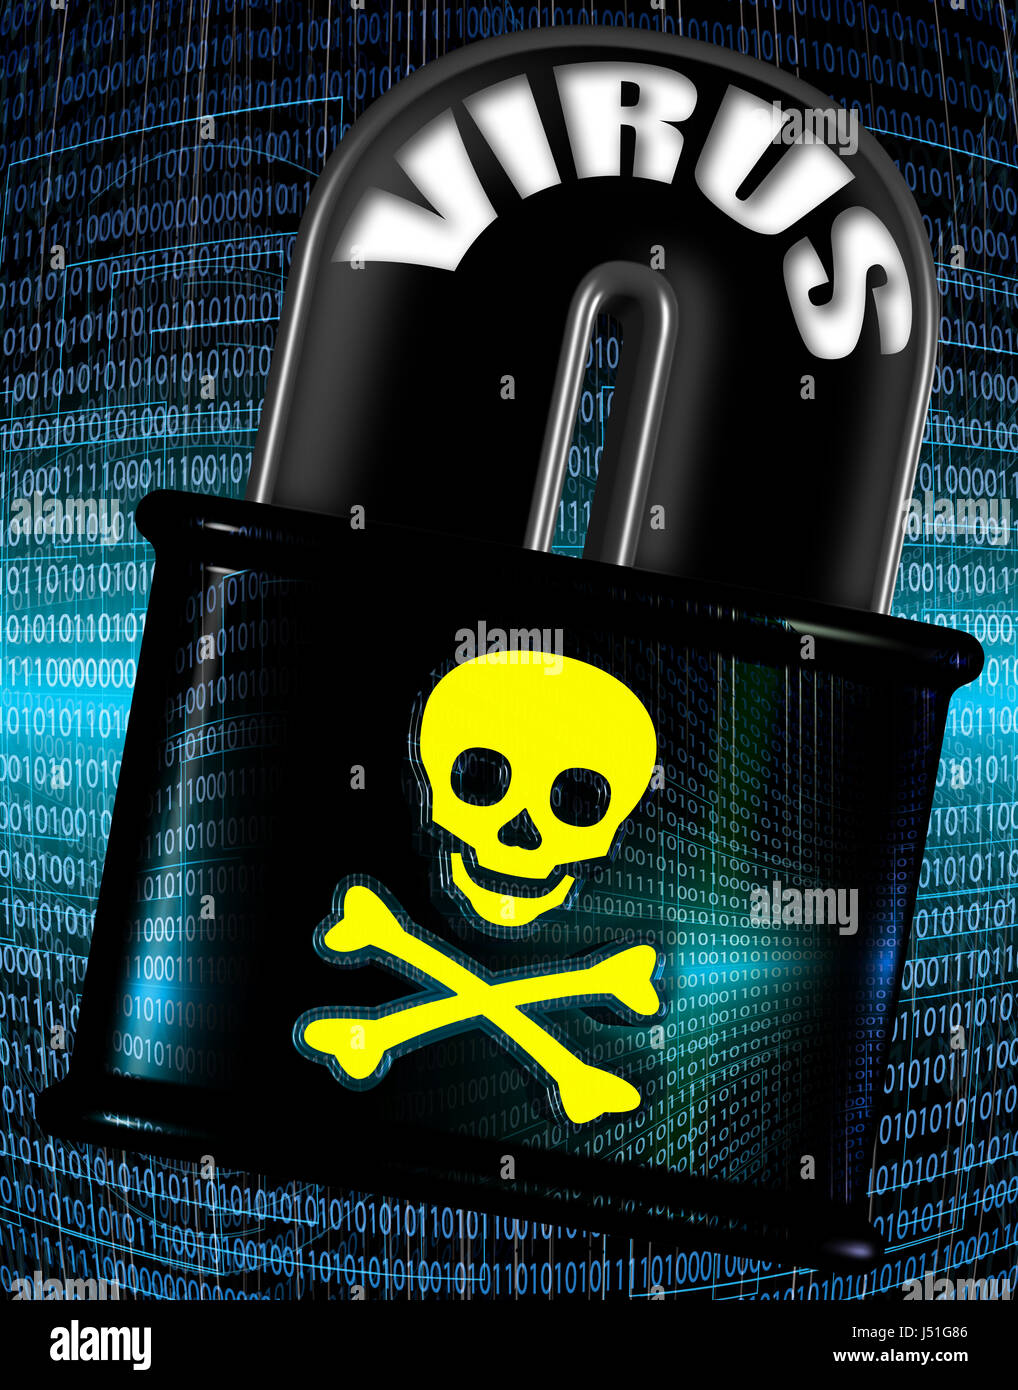 Internet security and malware concept illustration a skull and internet security and malware concept illustration a skull and bones symbol over a lock with binary code background buycottarizona Images